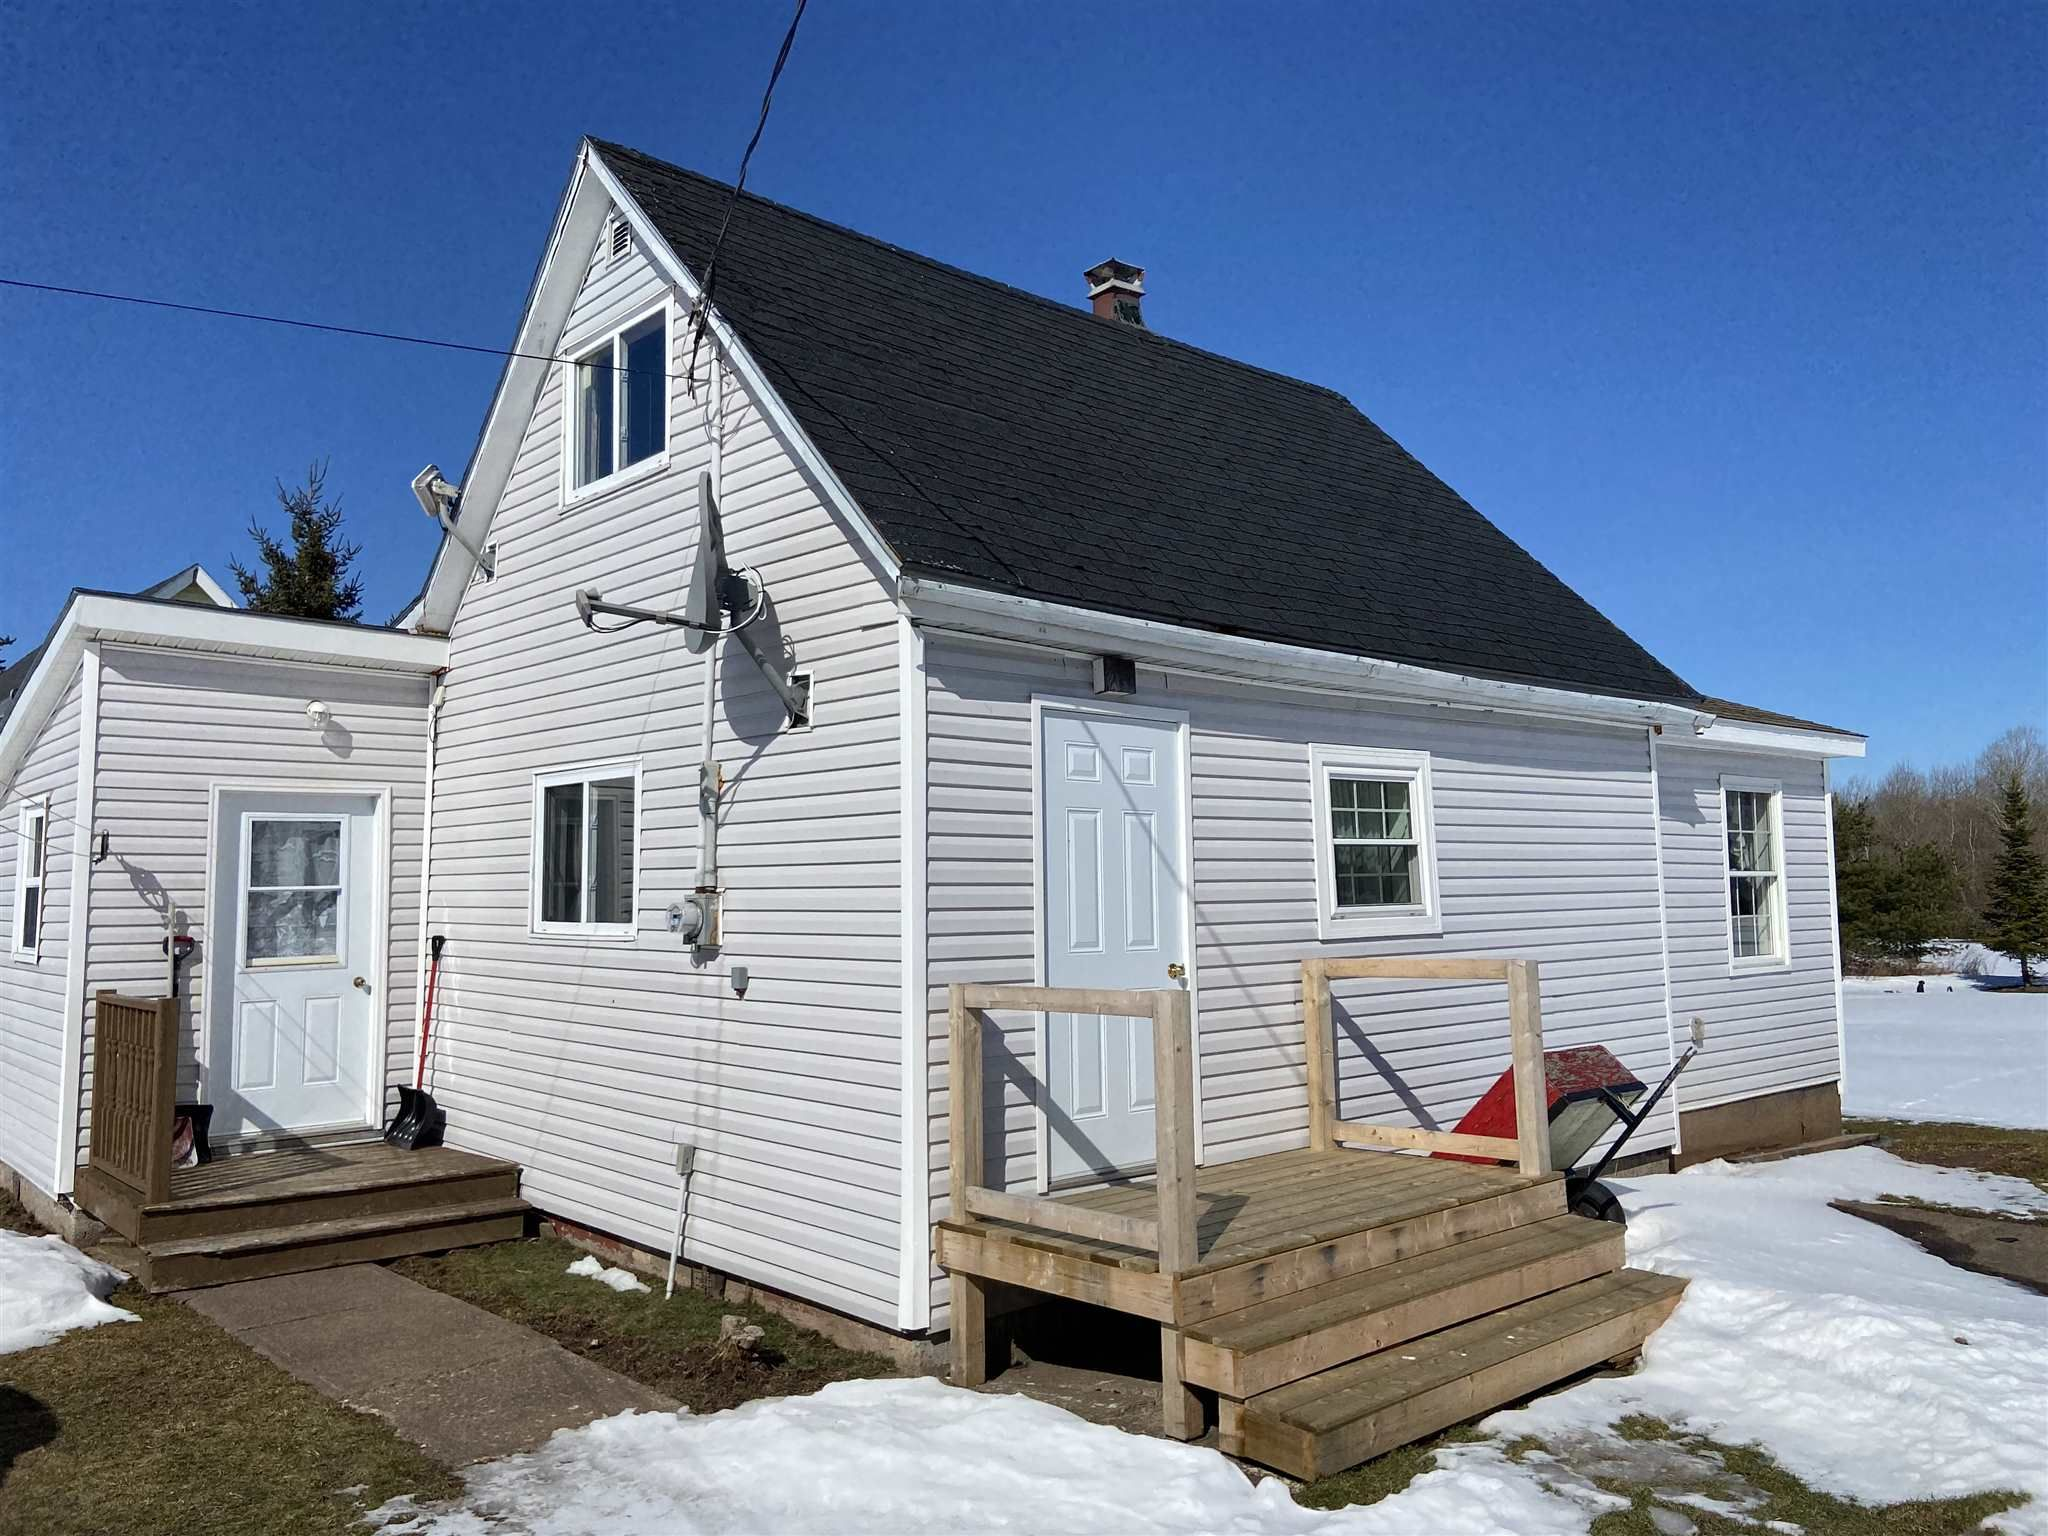 Main Photo: 8 Pump House Road in Granton: 108-Rural Pictou County Residential for sale (Northern Region)  : MLS®# 202104110